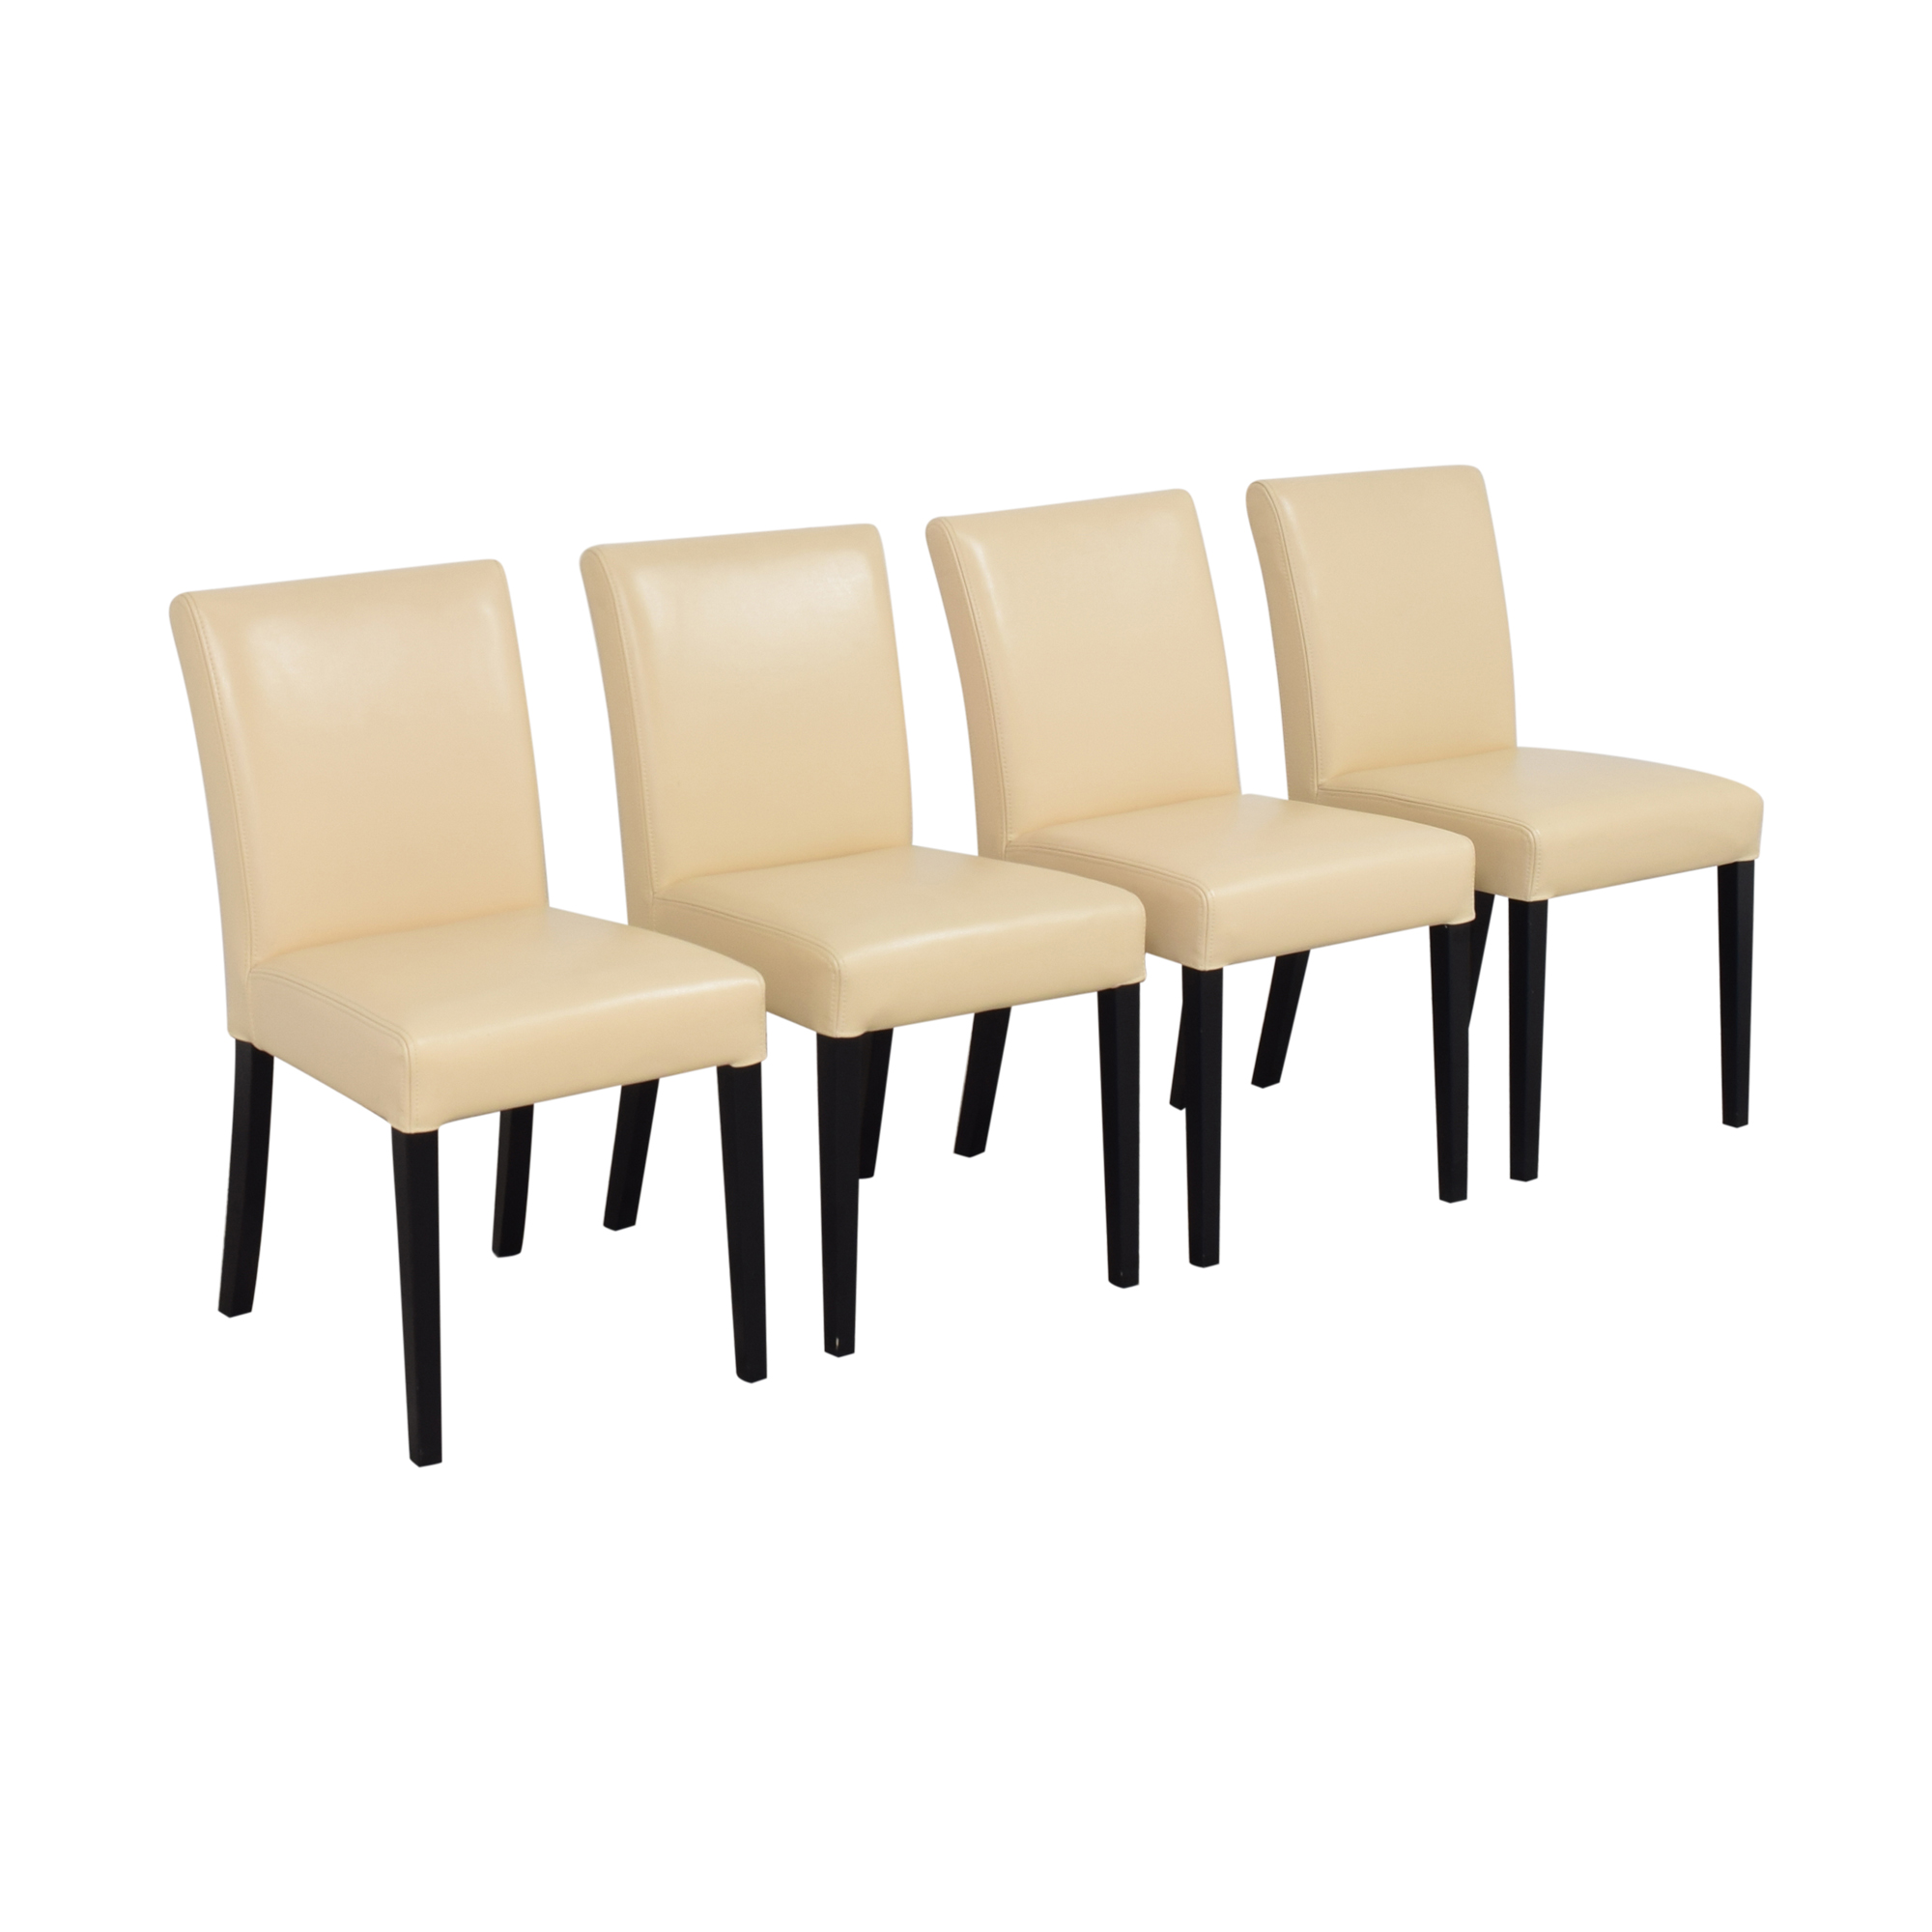 Crate & Barrel Crate & Barrel Lowe Dining Side Chairs ma